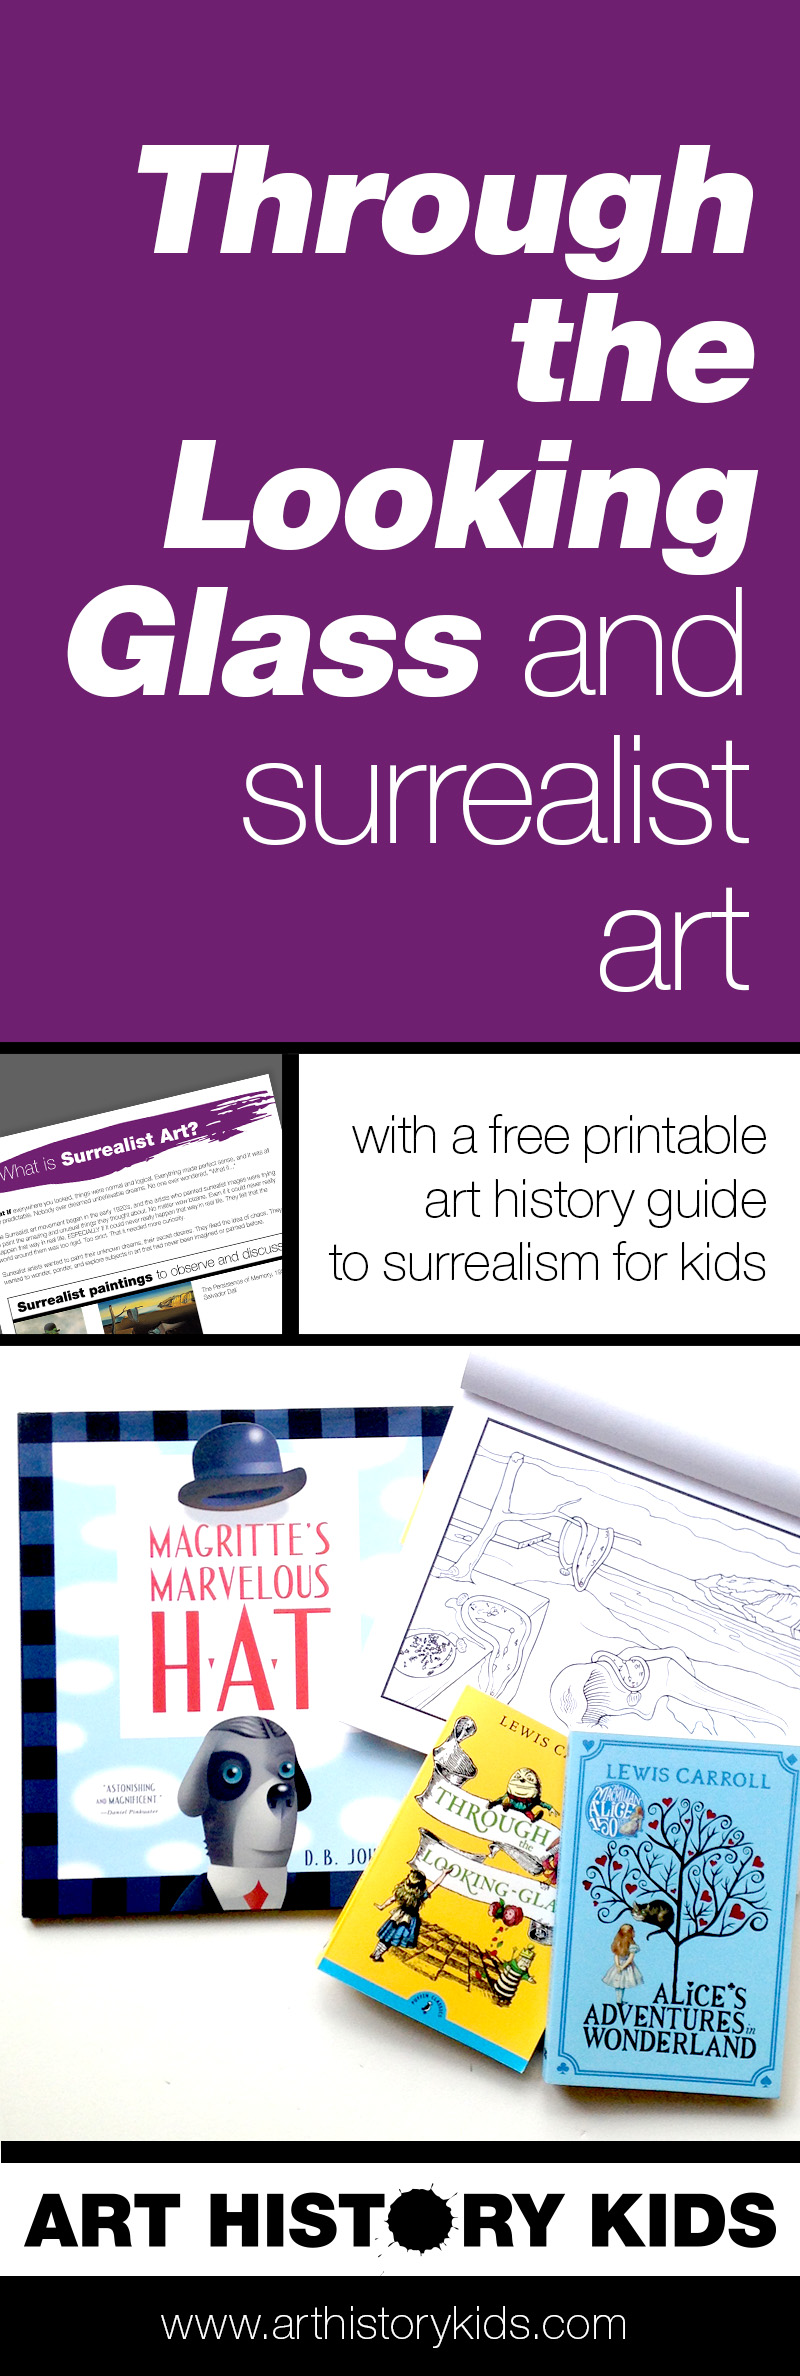 Have you read Alice's Adventures in Wonderland or Through the Looking Glass? Follow up with this fun art history project for kids, and unlock all the amazing similarities between the stories and some very famous surrealist paintings.